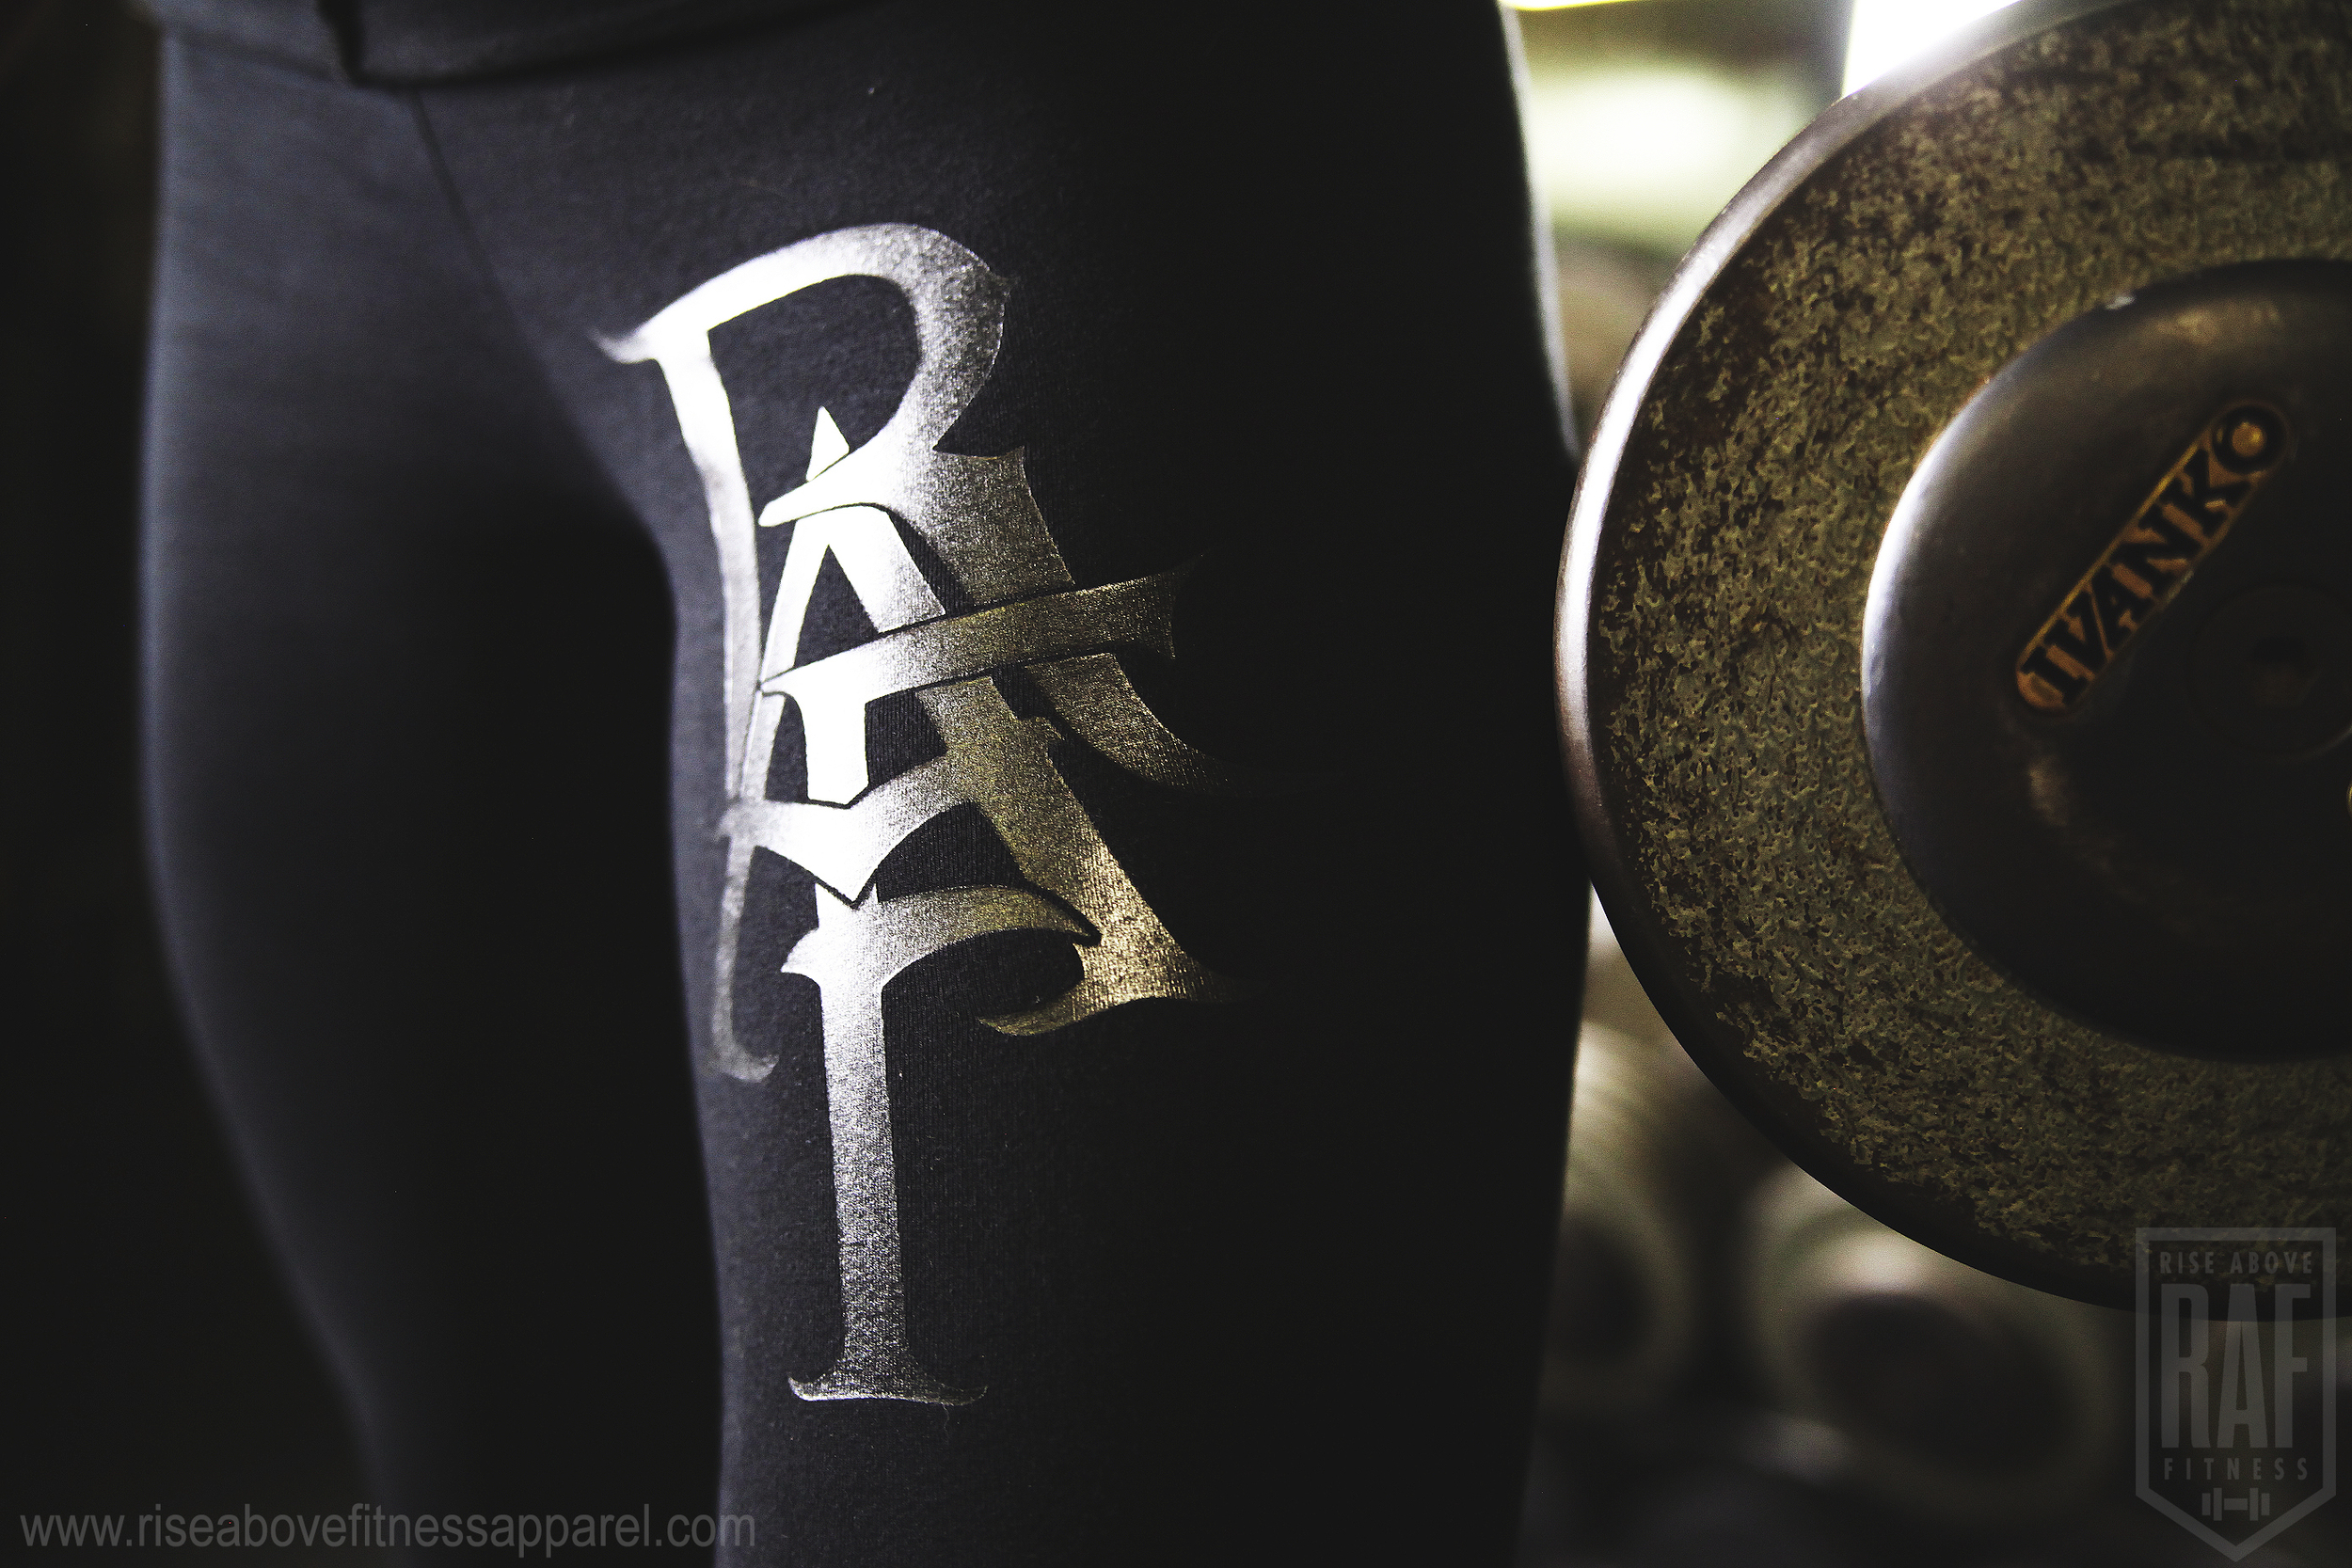 RAF MONOGRAM Leggings (Black on Black)_SHOOT.jpg